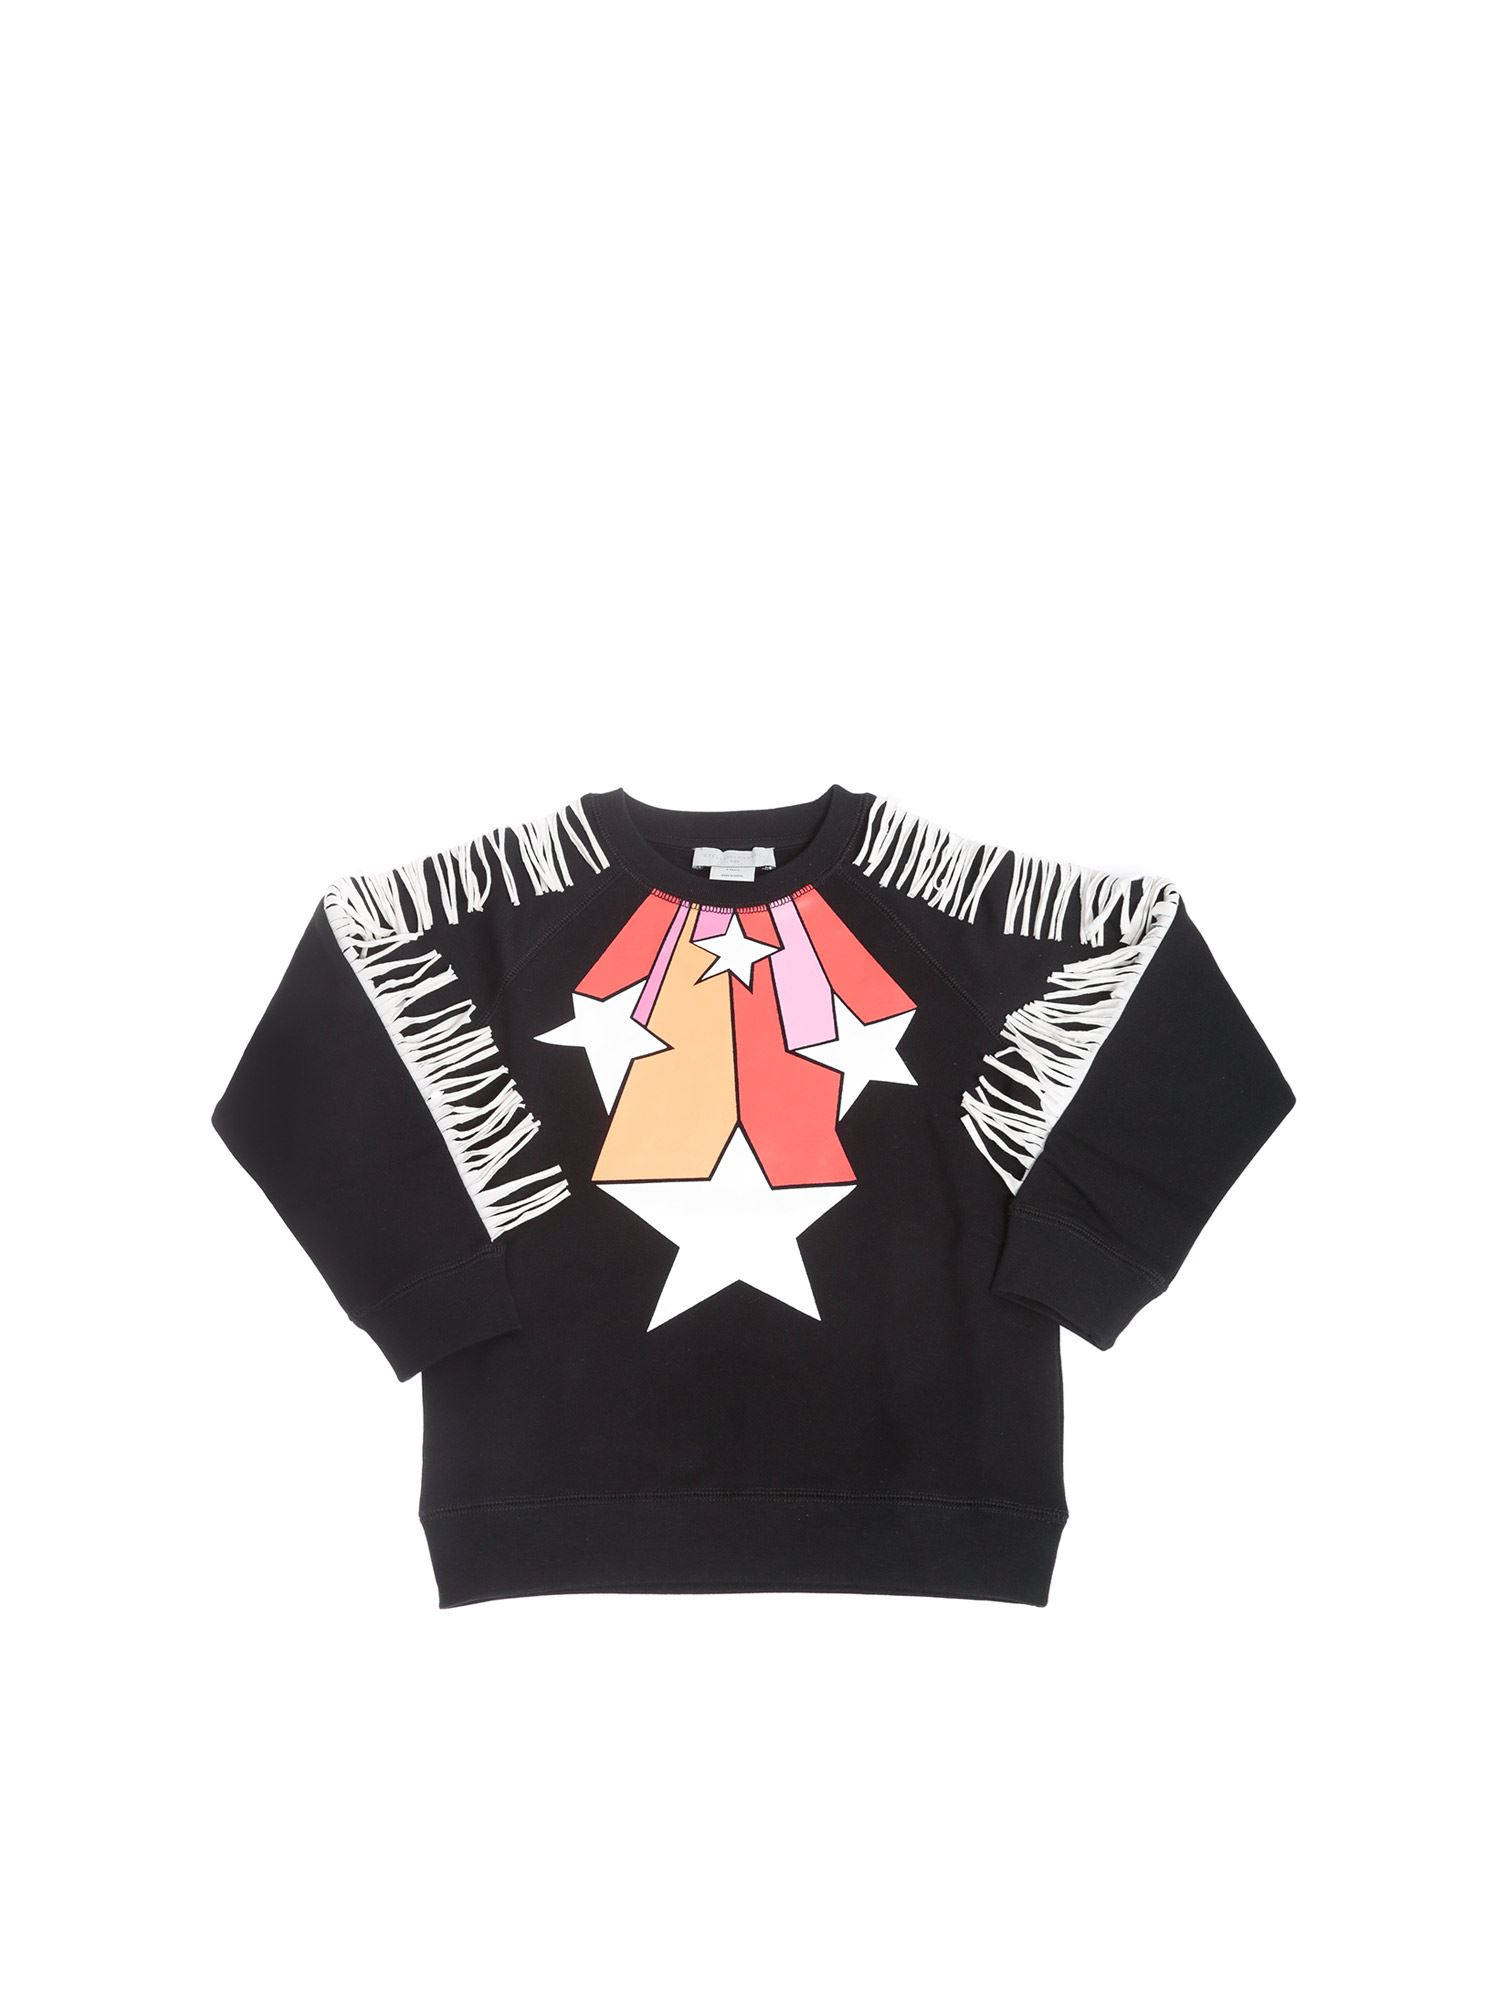 Stella Mccartney BLACK STARS NECKLACE SWEATSHIRT